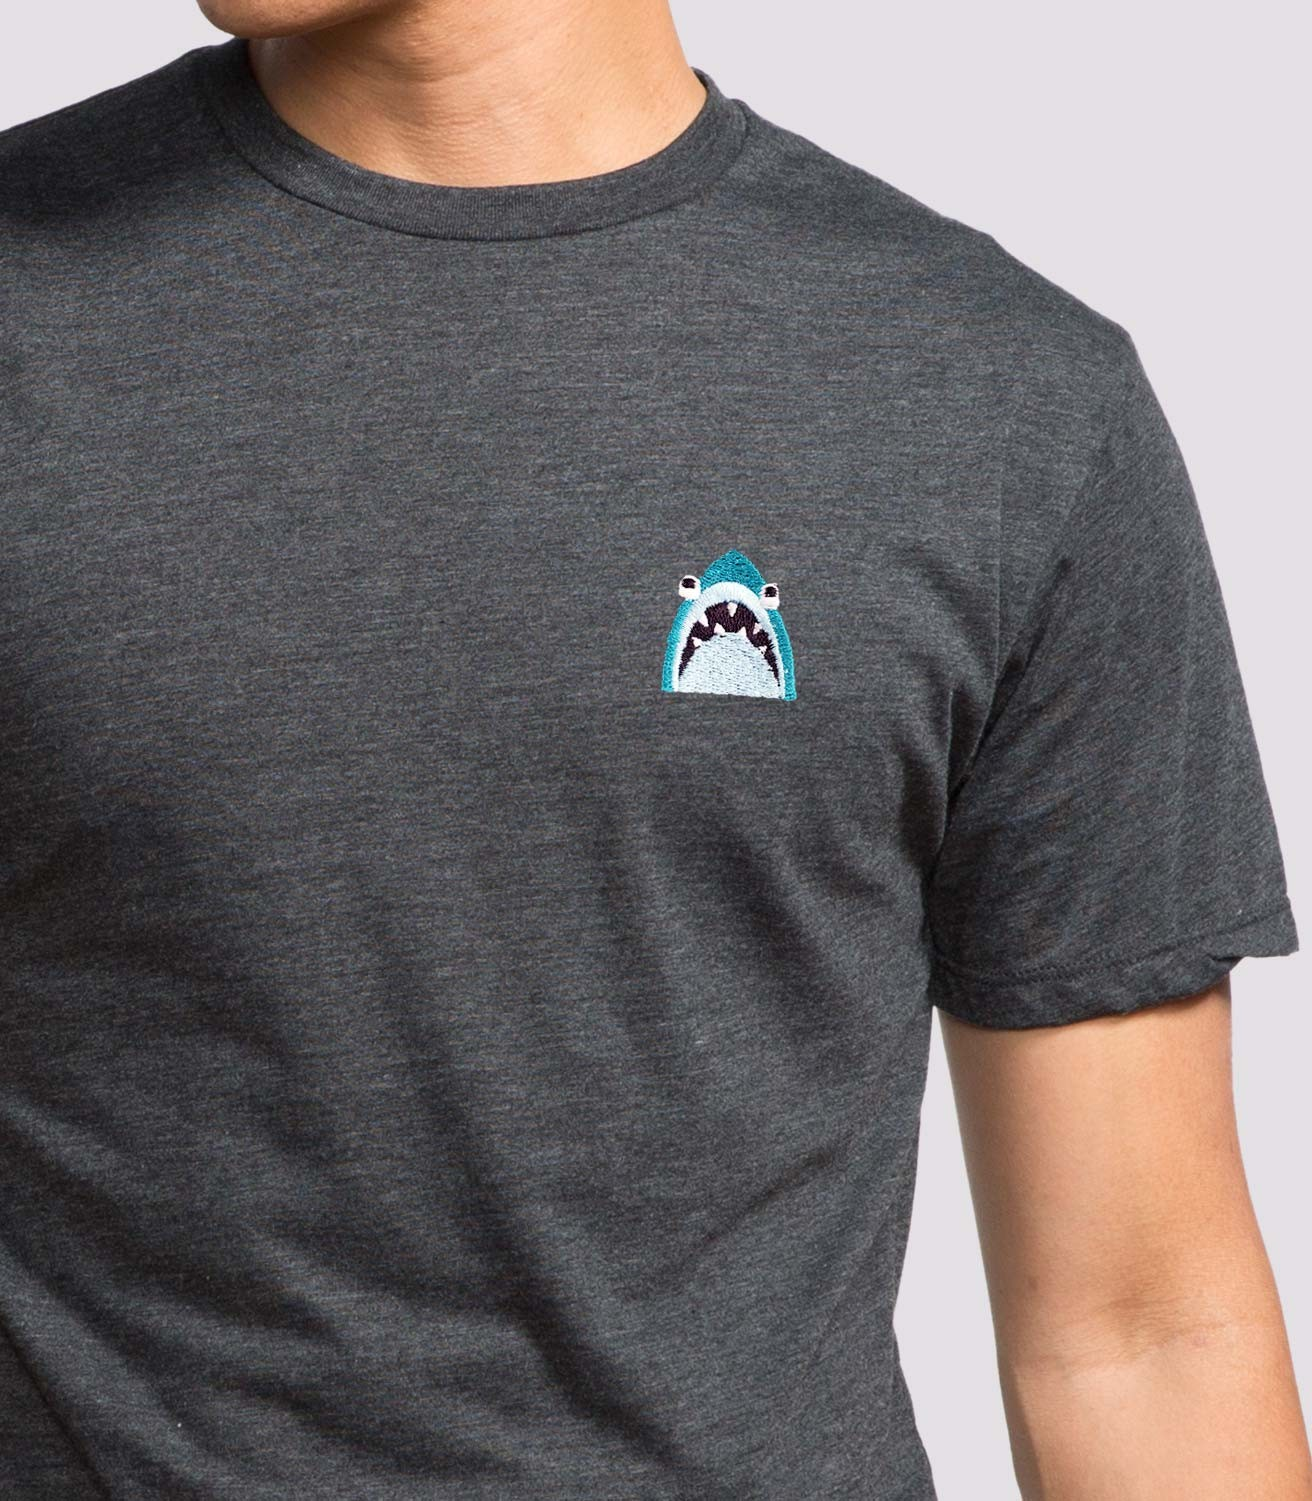 Shark embroidered men 39 s t shirt headline shirts for Shirt with logo embroidered